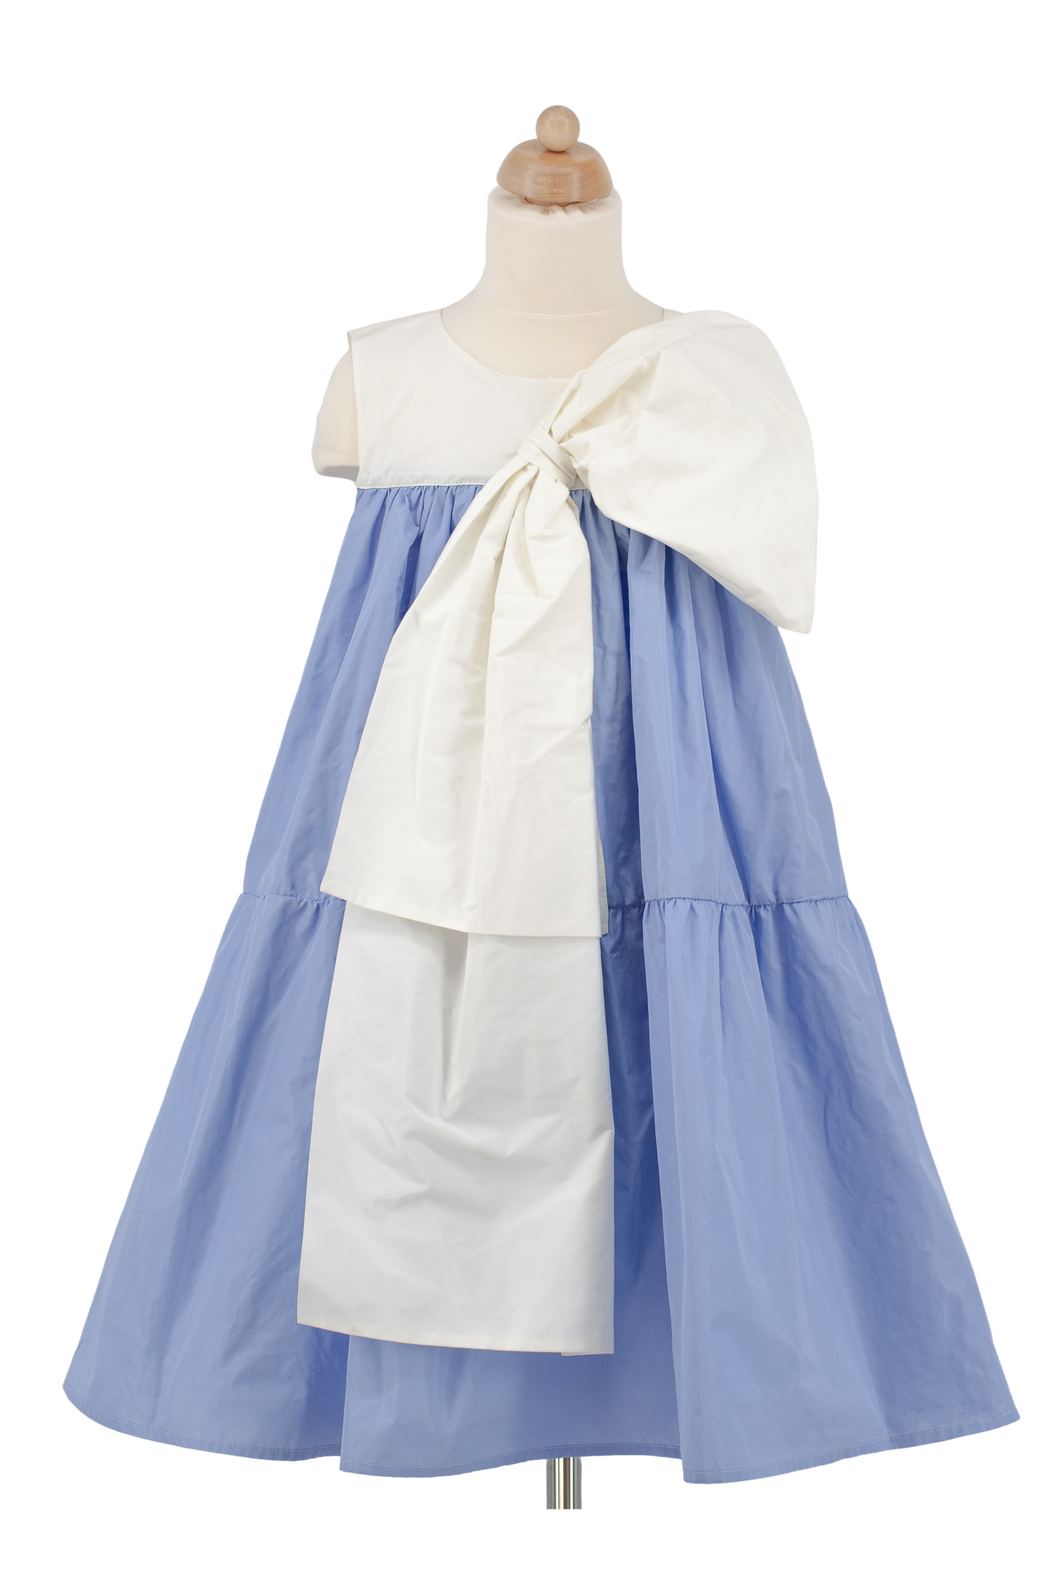 Cerisier Blue Dress - Amelie et Sophie